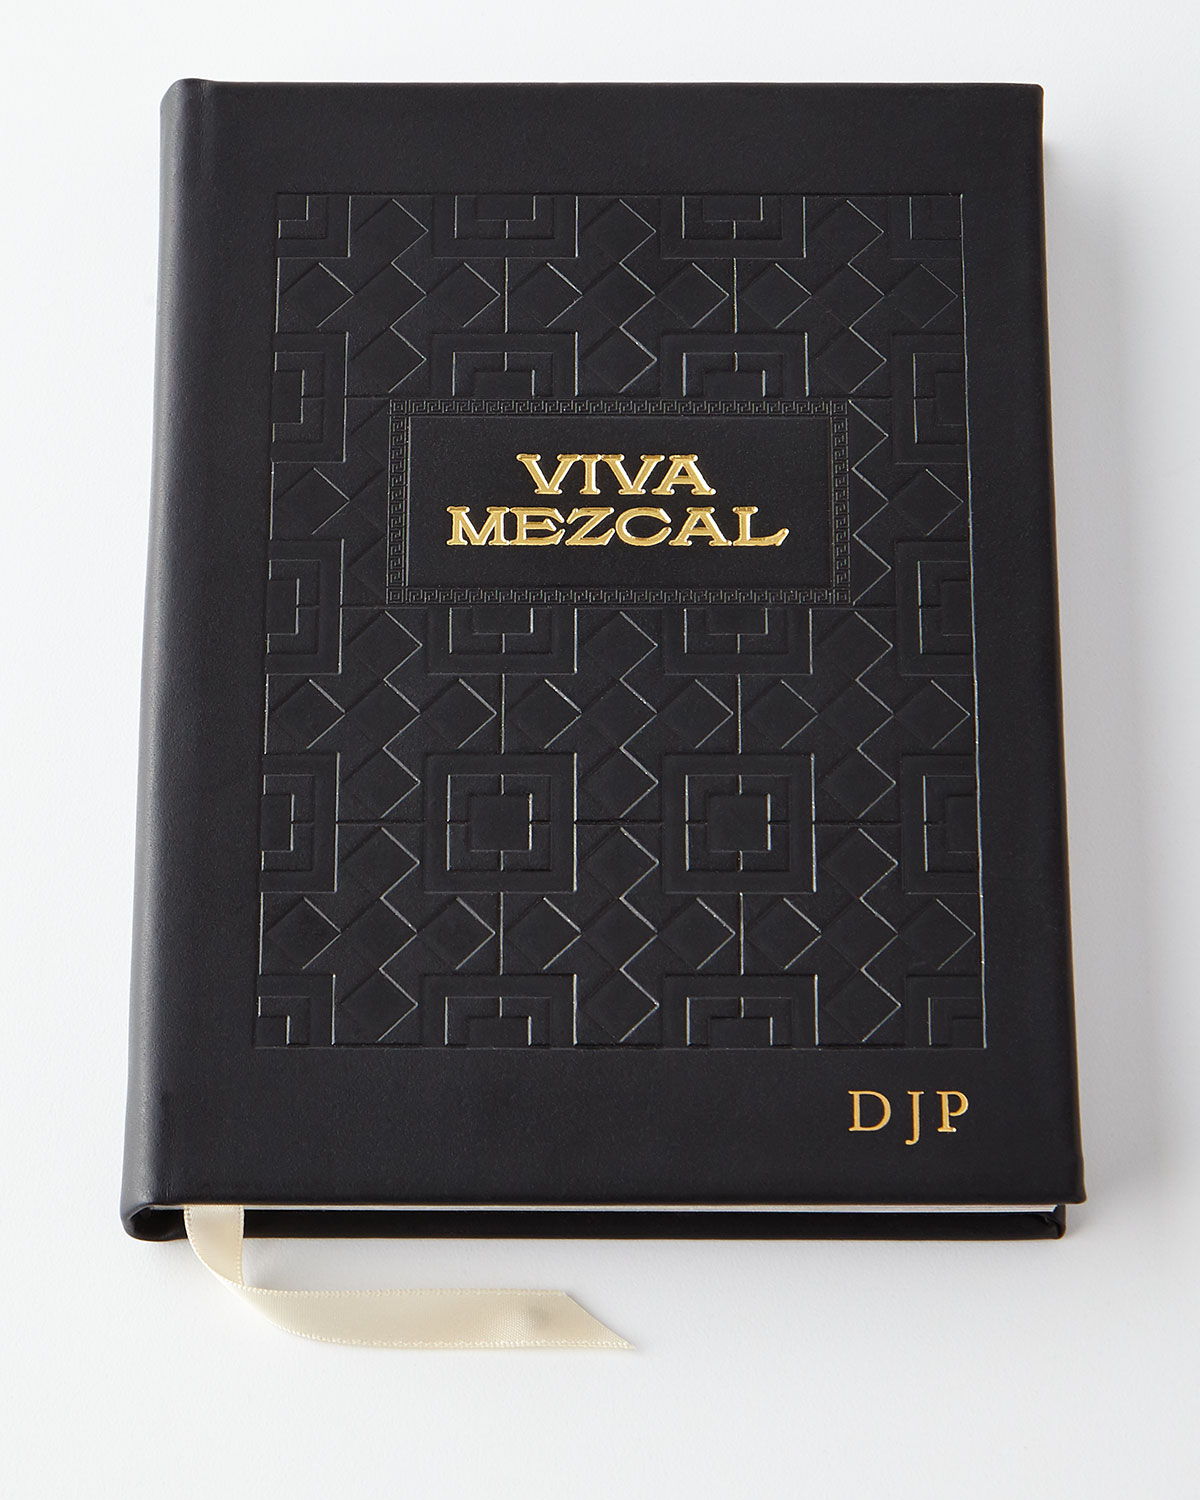 This book contains 50 cocktail recipes you can make at home with delicious, versatile out-of-this world Mezcal, containing information about how this small-batch liquor is made by Oaxacan families, and will include tasting notes on almost every brand available in the US. Artisanal Mezcal follows a delicate underground baking process that has existed for hundreds of years, but it is only now that it's experiencing a Renaissance in craft cocktail bars and homes around the country. Made from aga.